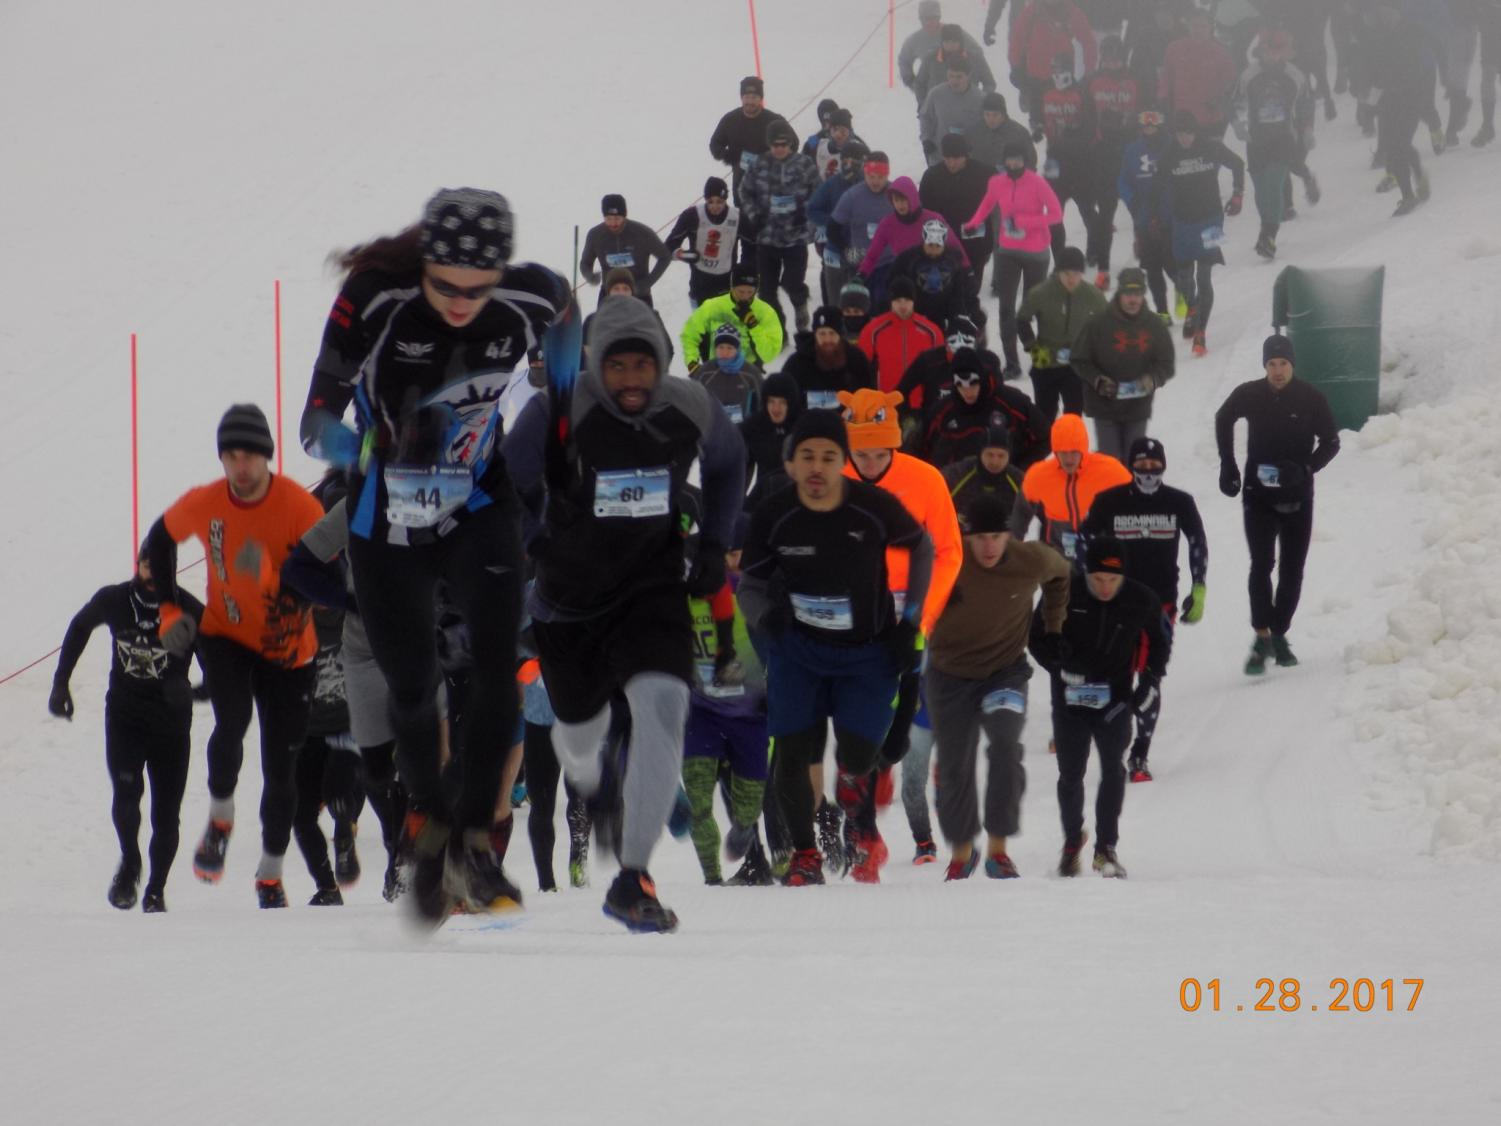 Participants take part in the 2017 Abominable Snow Race. As the 2018 race approaches, students look forward to participating.